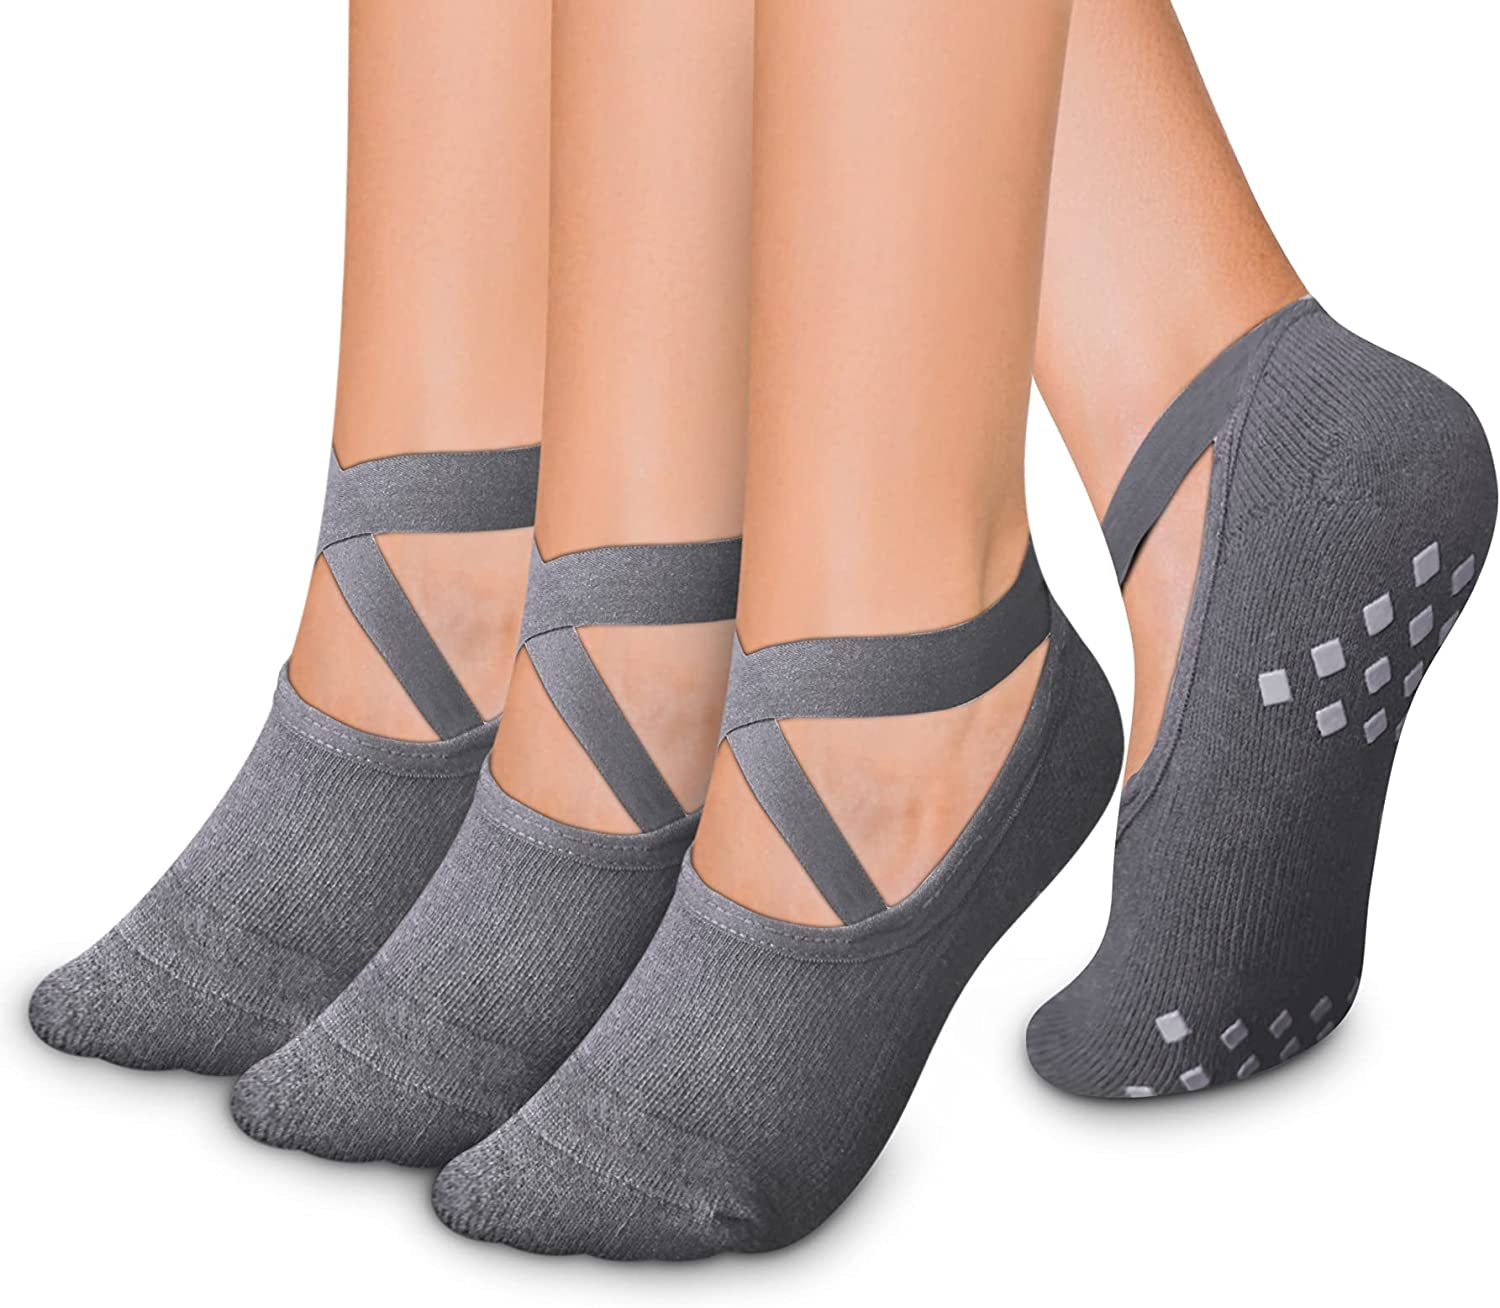 Yoga Socks with Grips for Women Barre Pure Non B supreme Same day shipping Slip Pilates